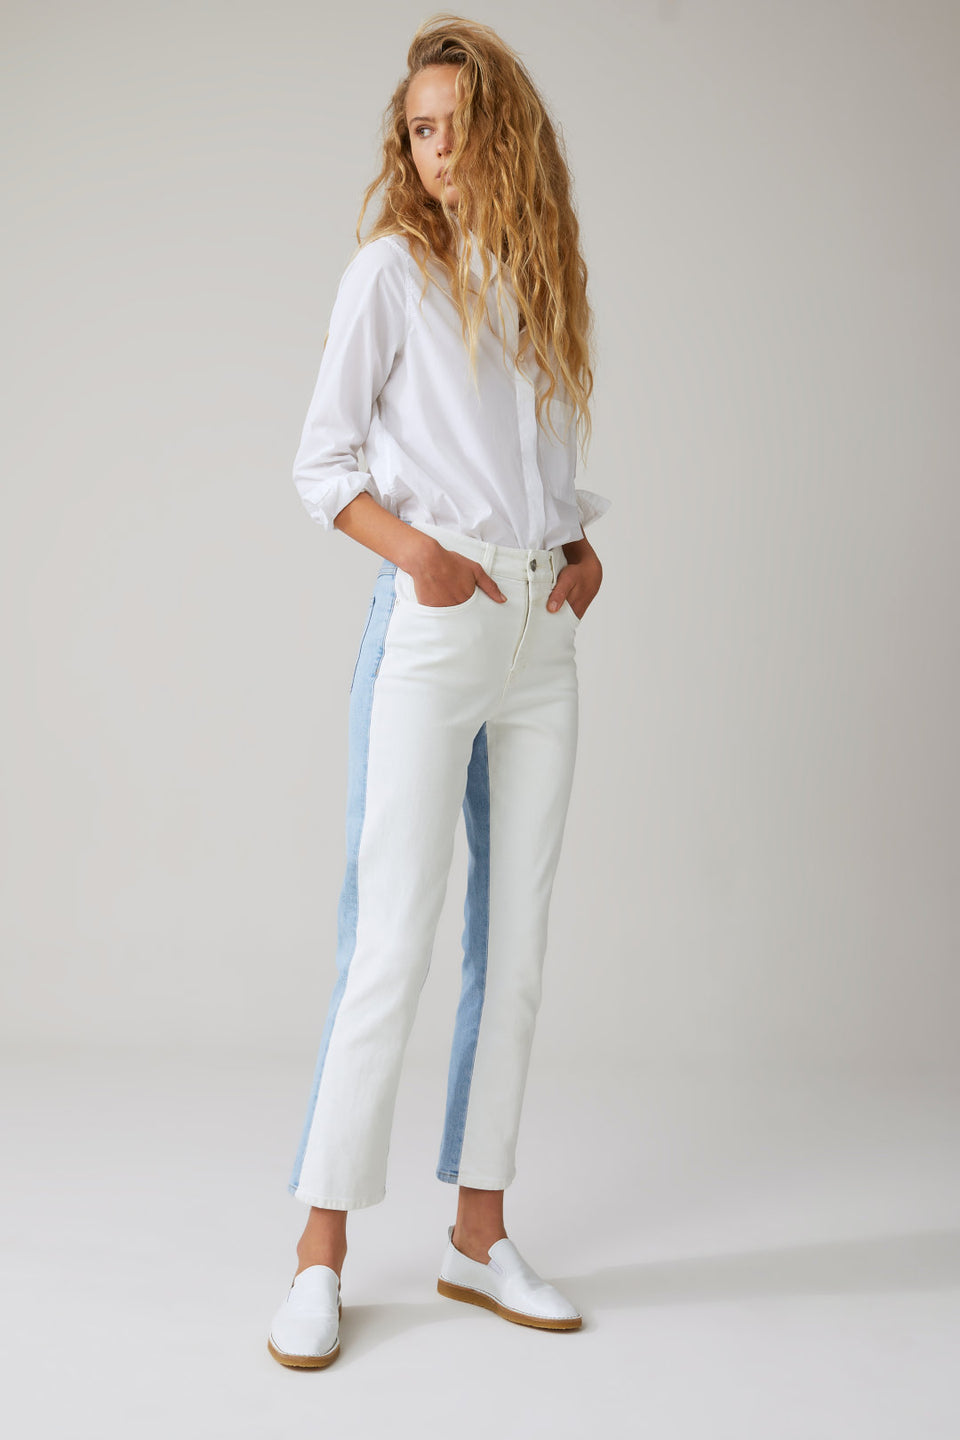 CLOSED • Pantalon Gloria Jean bicolore Blanc / Bleu